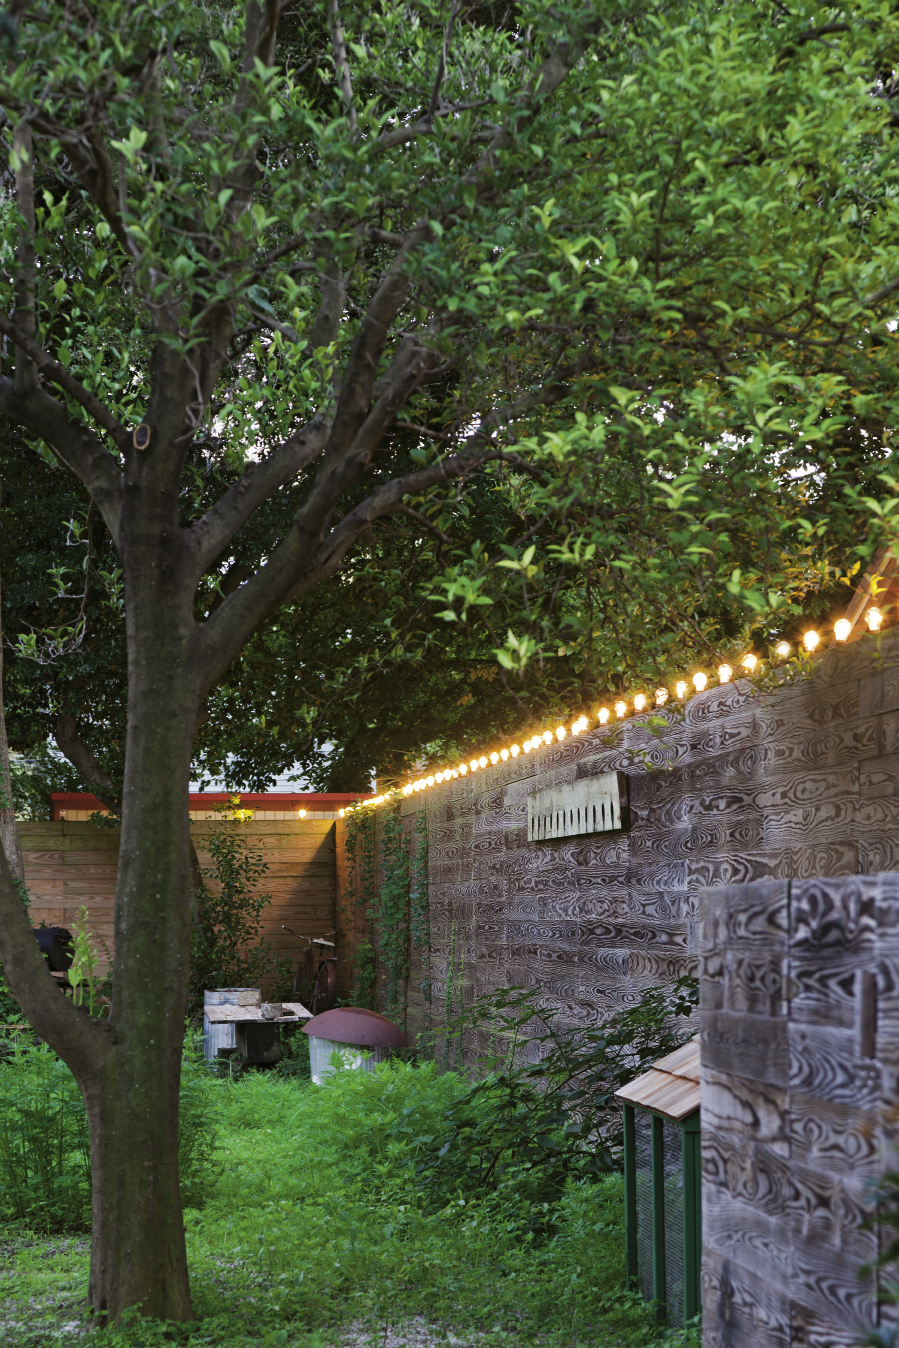 Rice and Nissenboim added a fence in the backyard for privacy; bulbs around its perimeter light up the space after dusk.